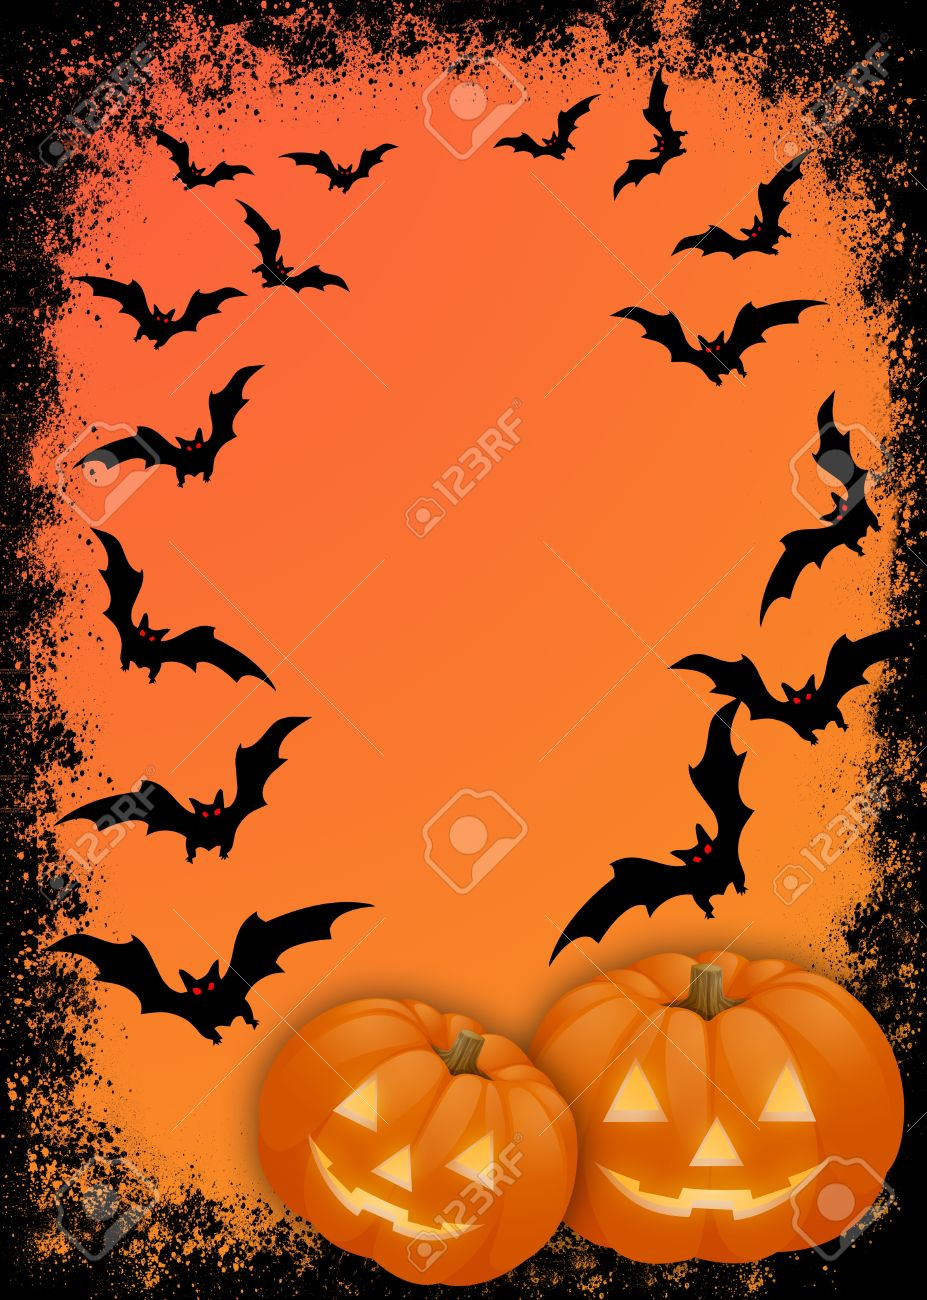 Halloween Invitation Card For The Party Or Background With Elements Of